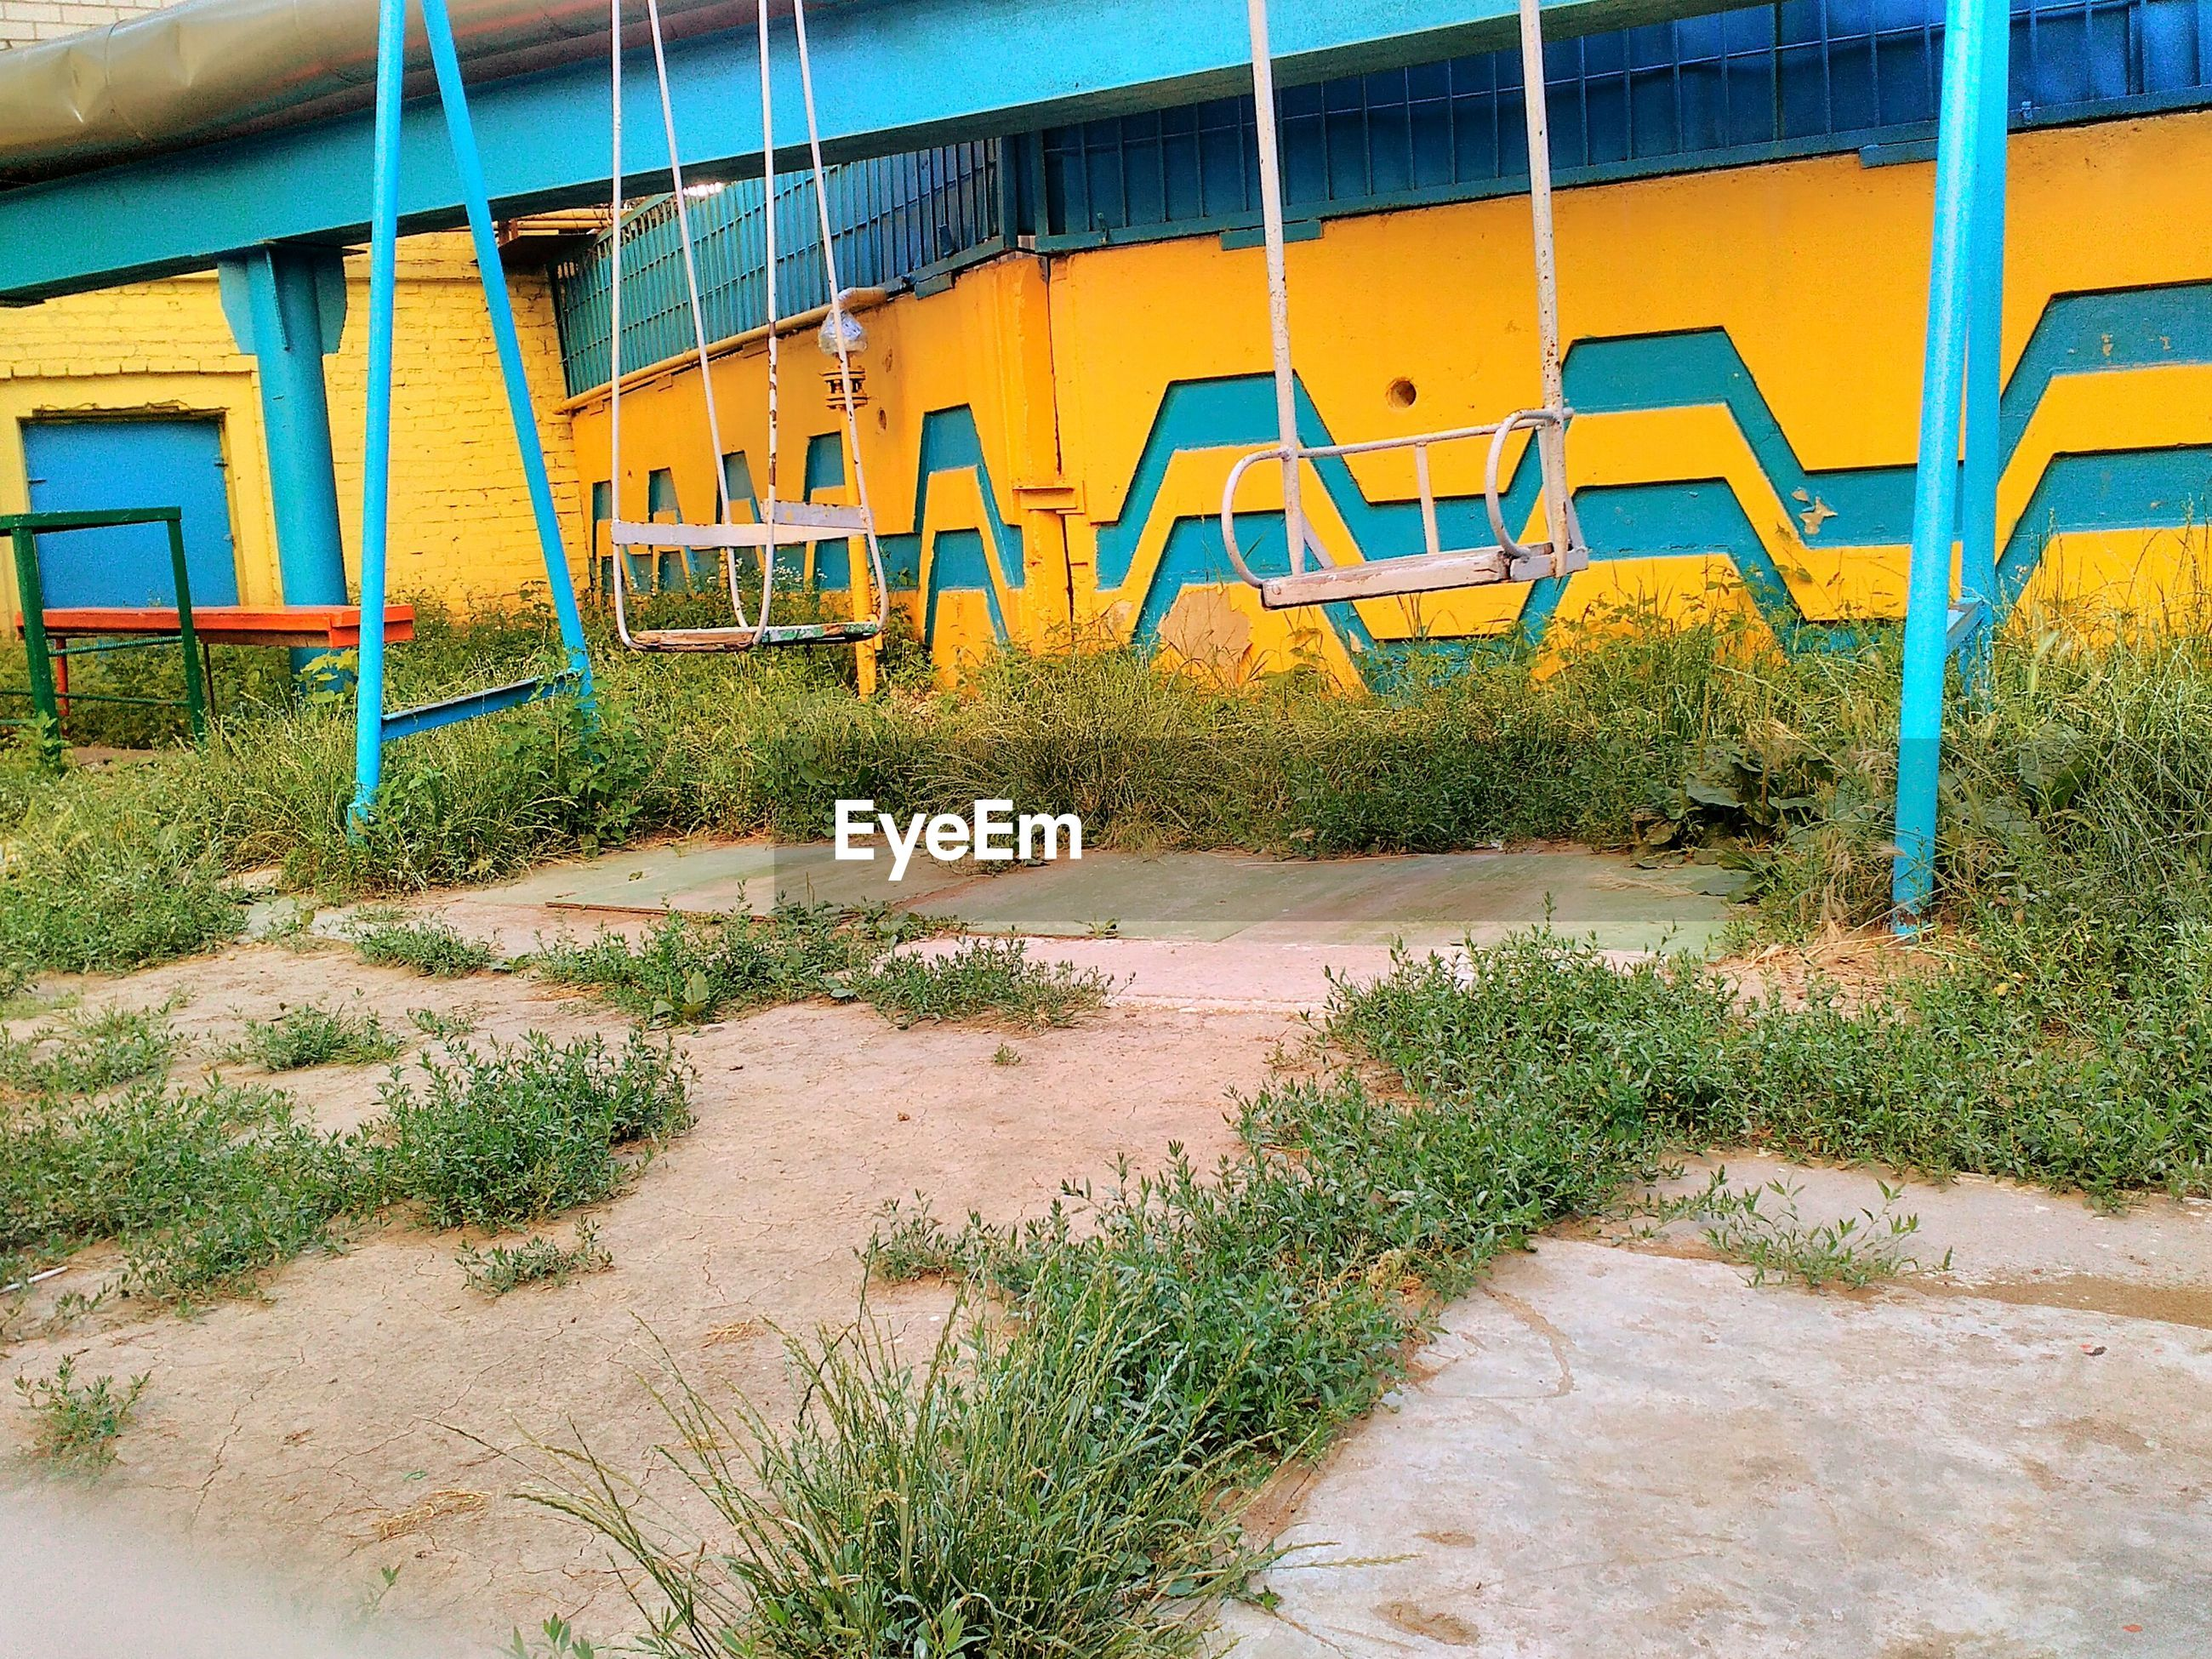 built structure, architecture, grass, plant, yellow, day, no people, outdoors, growth, green color, multi colored, blue, nature, green